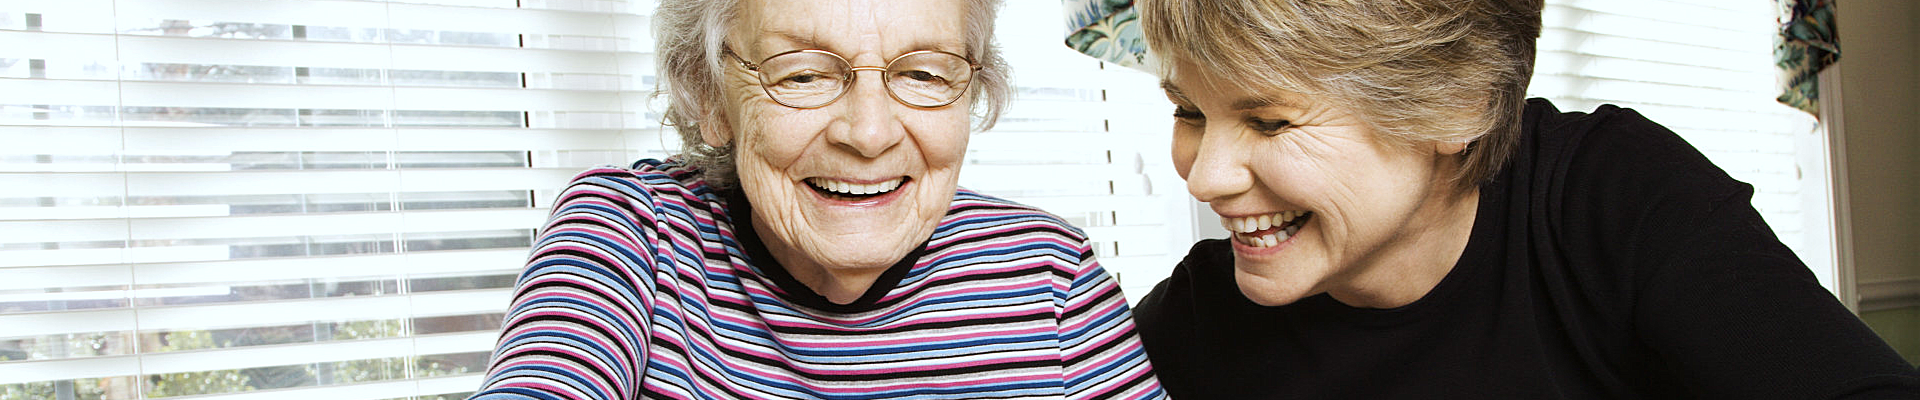 caregiver and patient laughing at something